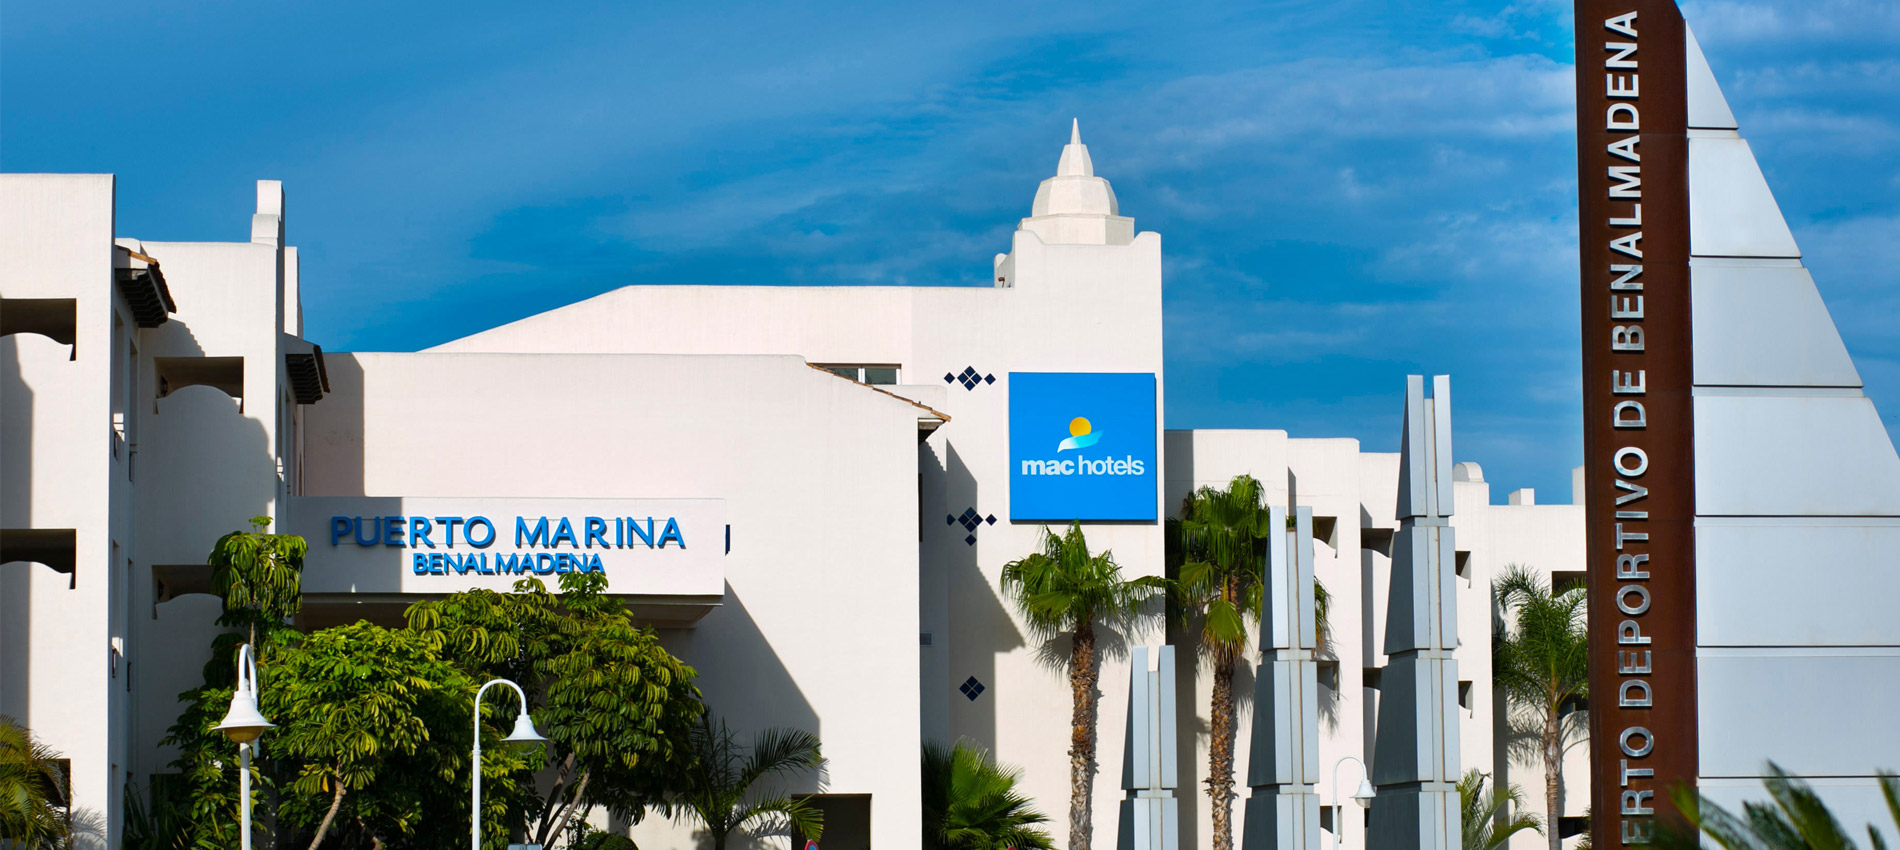 Contact hotel mac puerto marina benalmadena 4 malaga for Contact hotel